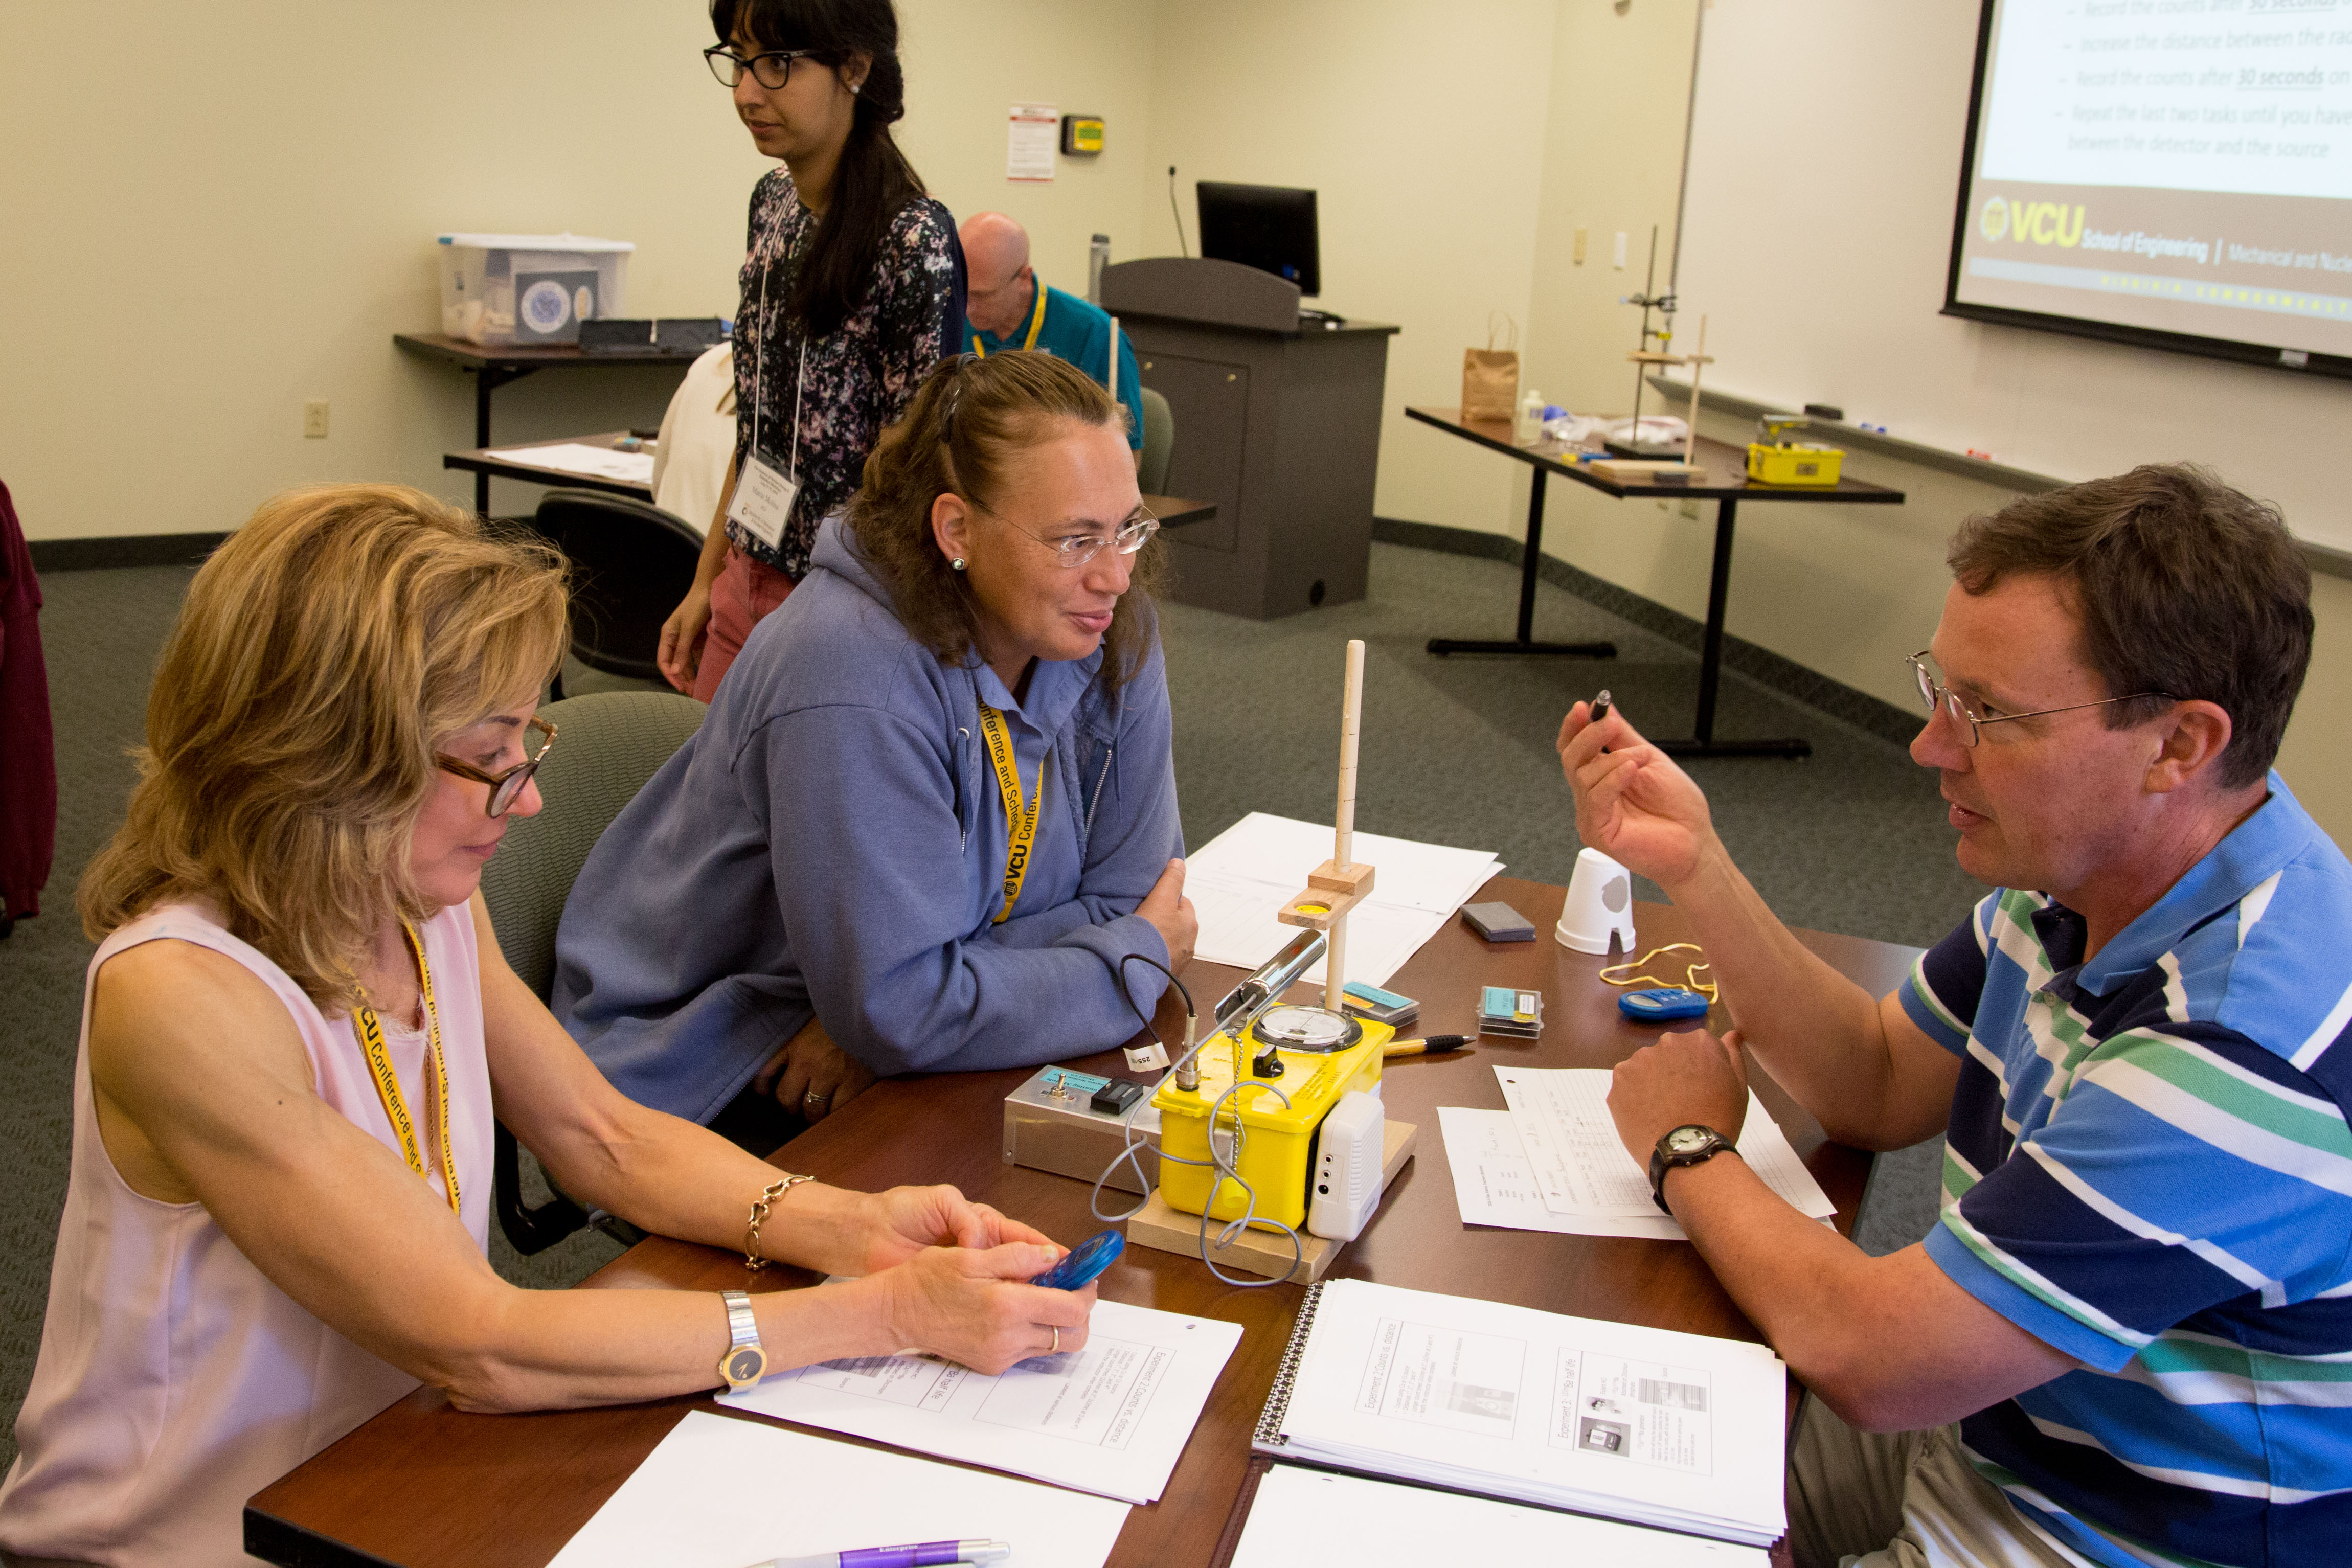 science-teachers-workshop-07-2016-5674_28250534191_o